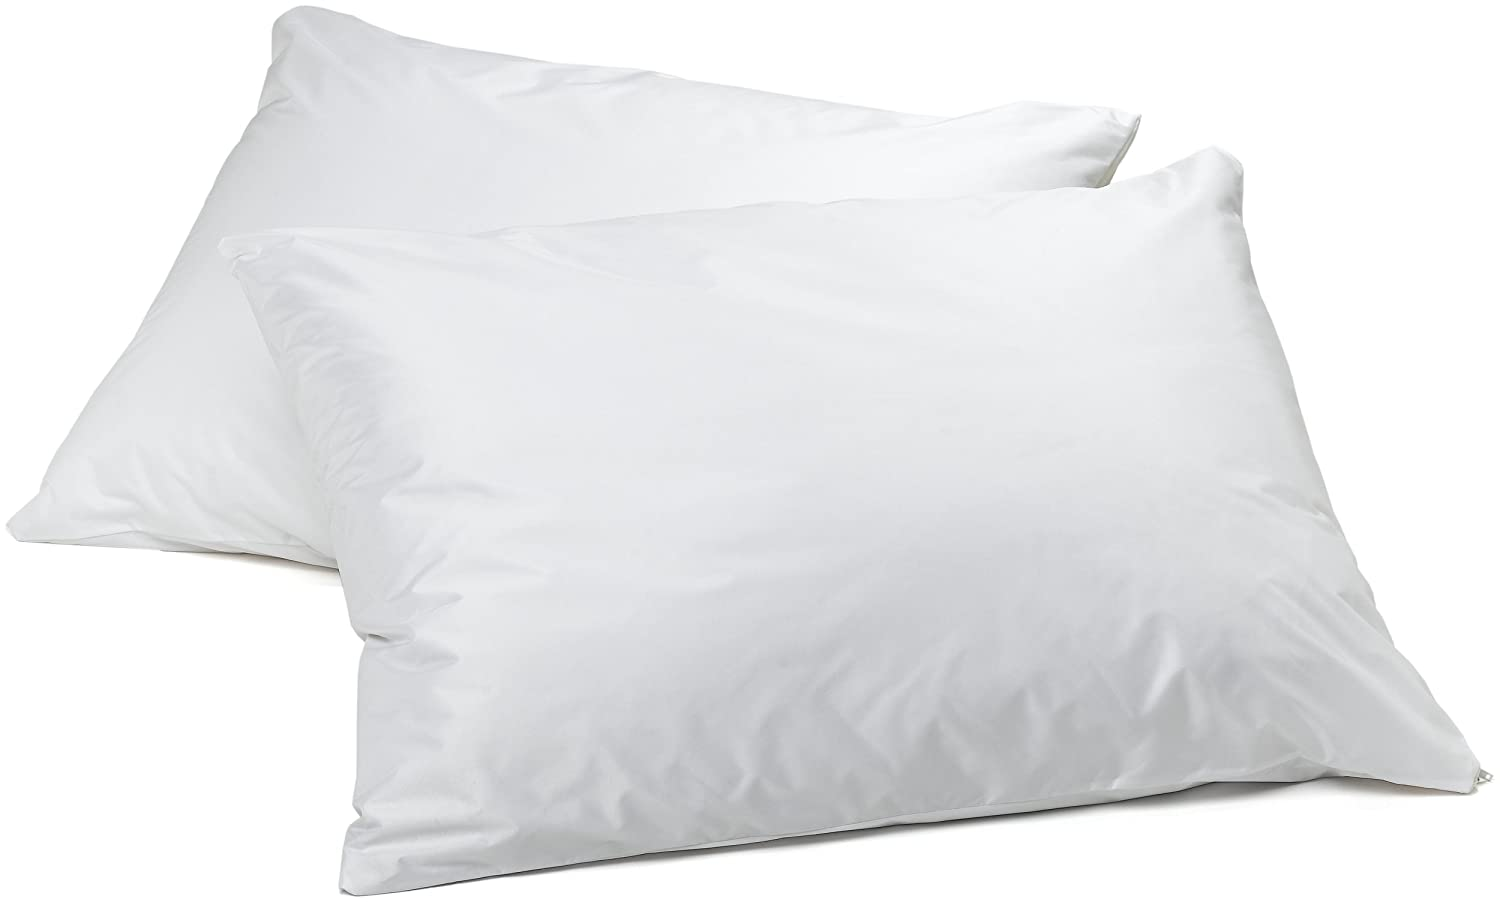 AllerEase Allergen Barrier Pillow Protectors – Waterproof Zippered Pillow Protectors, Allergist Recommended, Prevent Collection of Dust Mites and Other Allergens, King Sized, Set of 2 Aller-Ease 4758